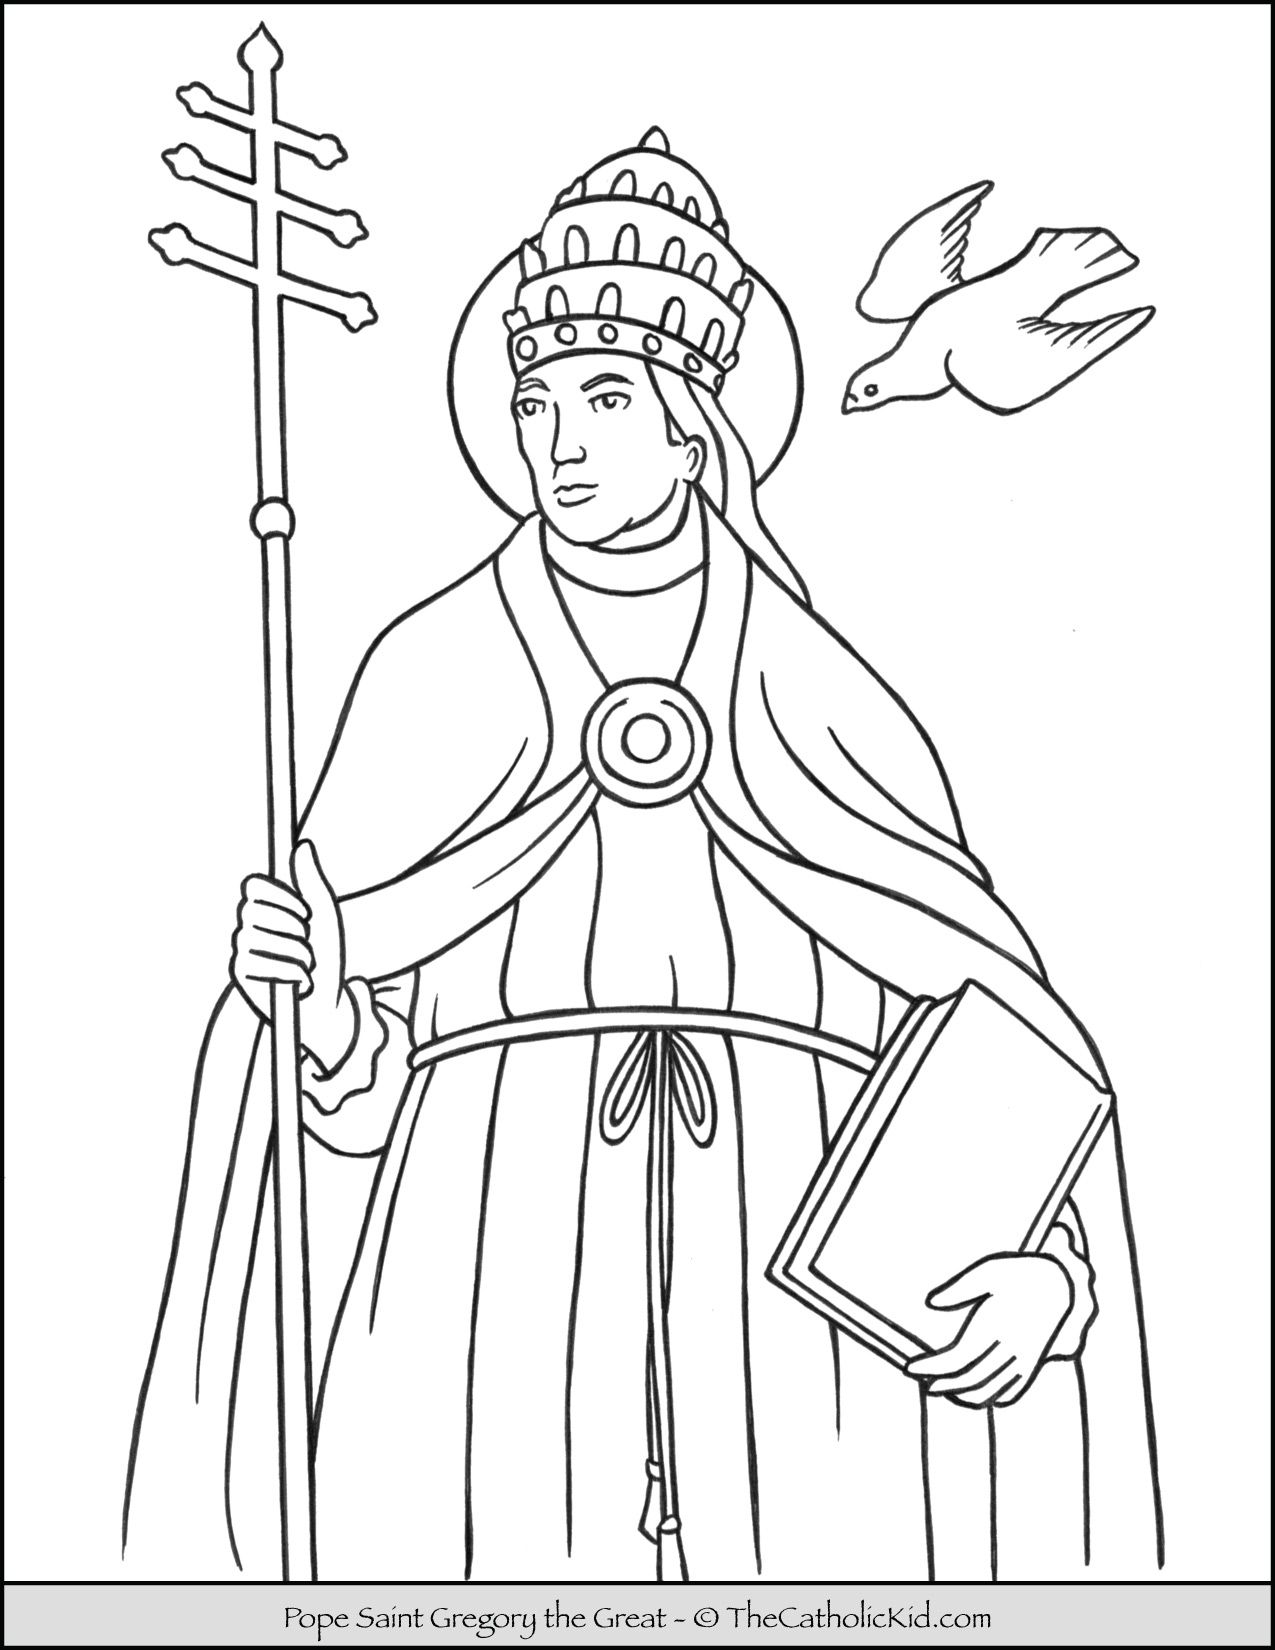 Pope Saint Gregory The Great Coloring Page Thecatholickid Com